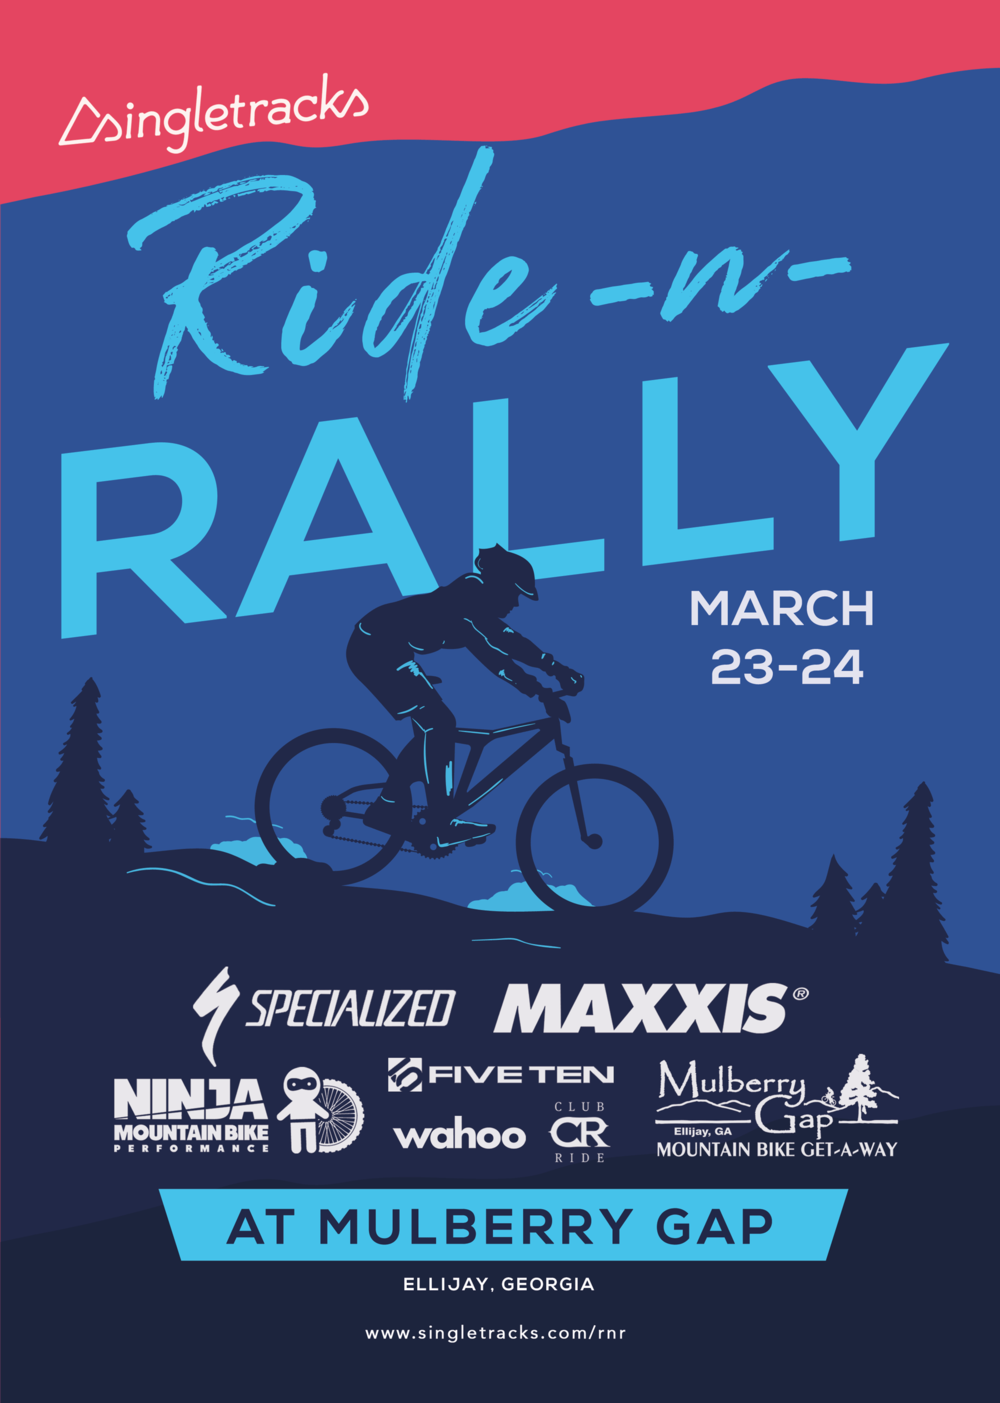 2019-singletracks-ride-n-rally-poster.png